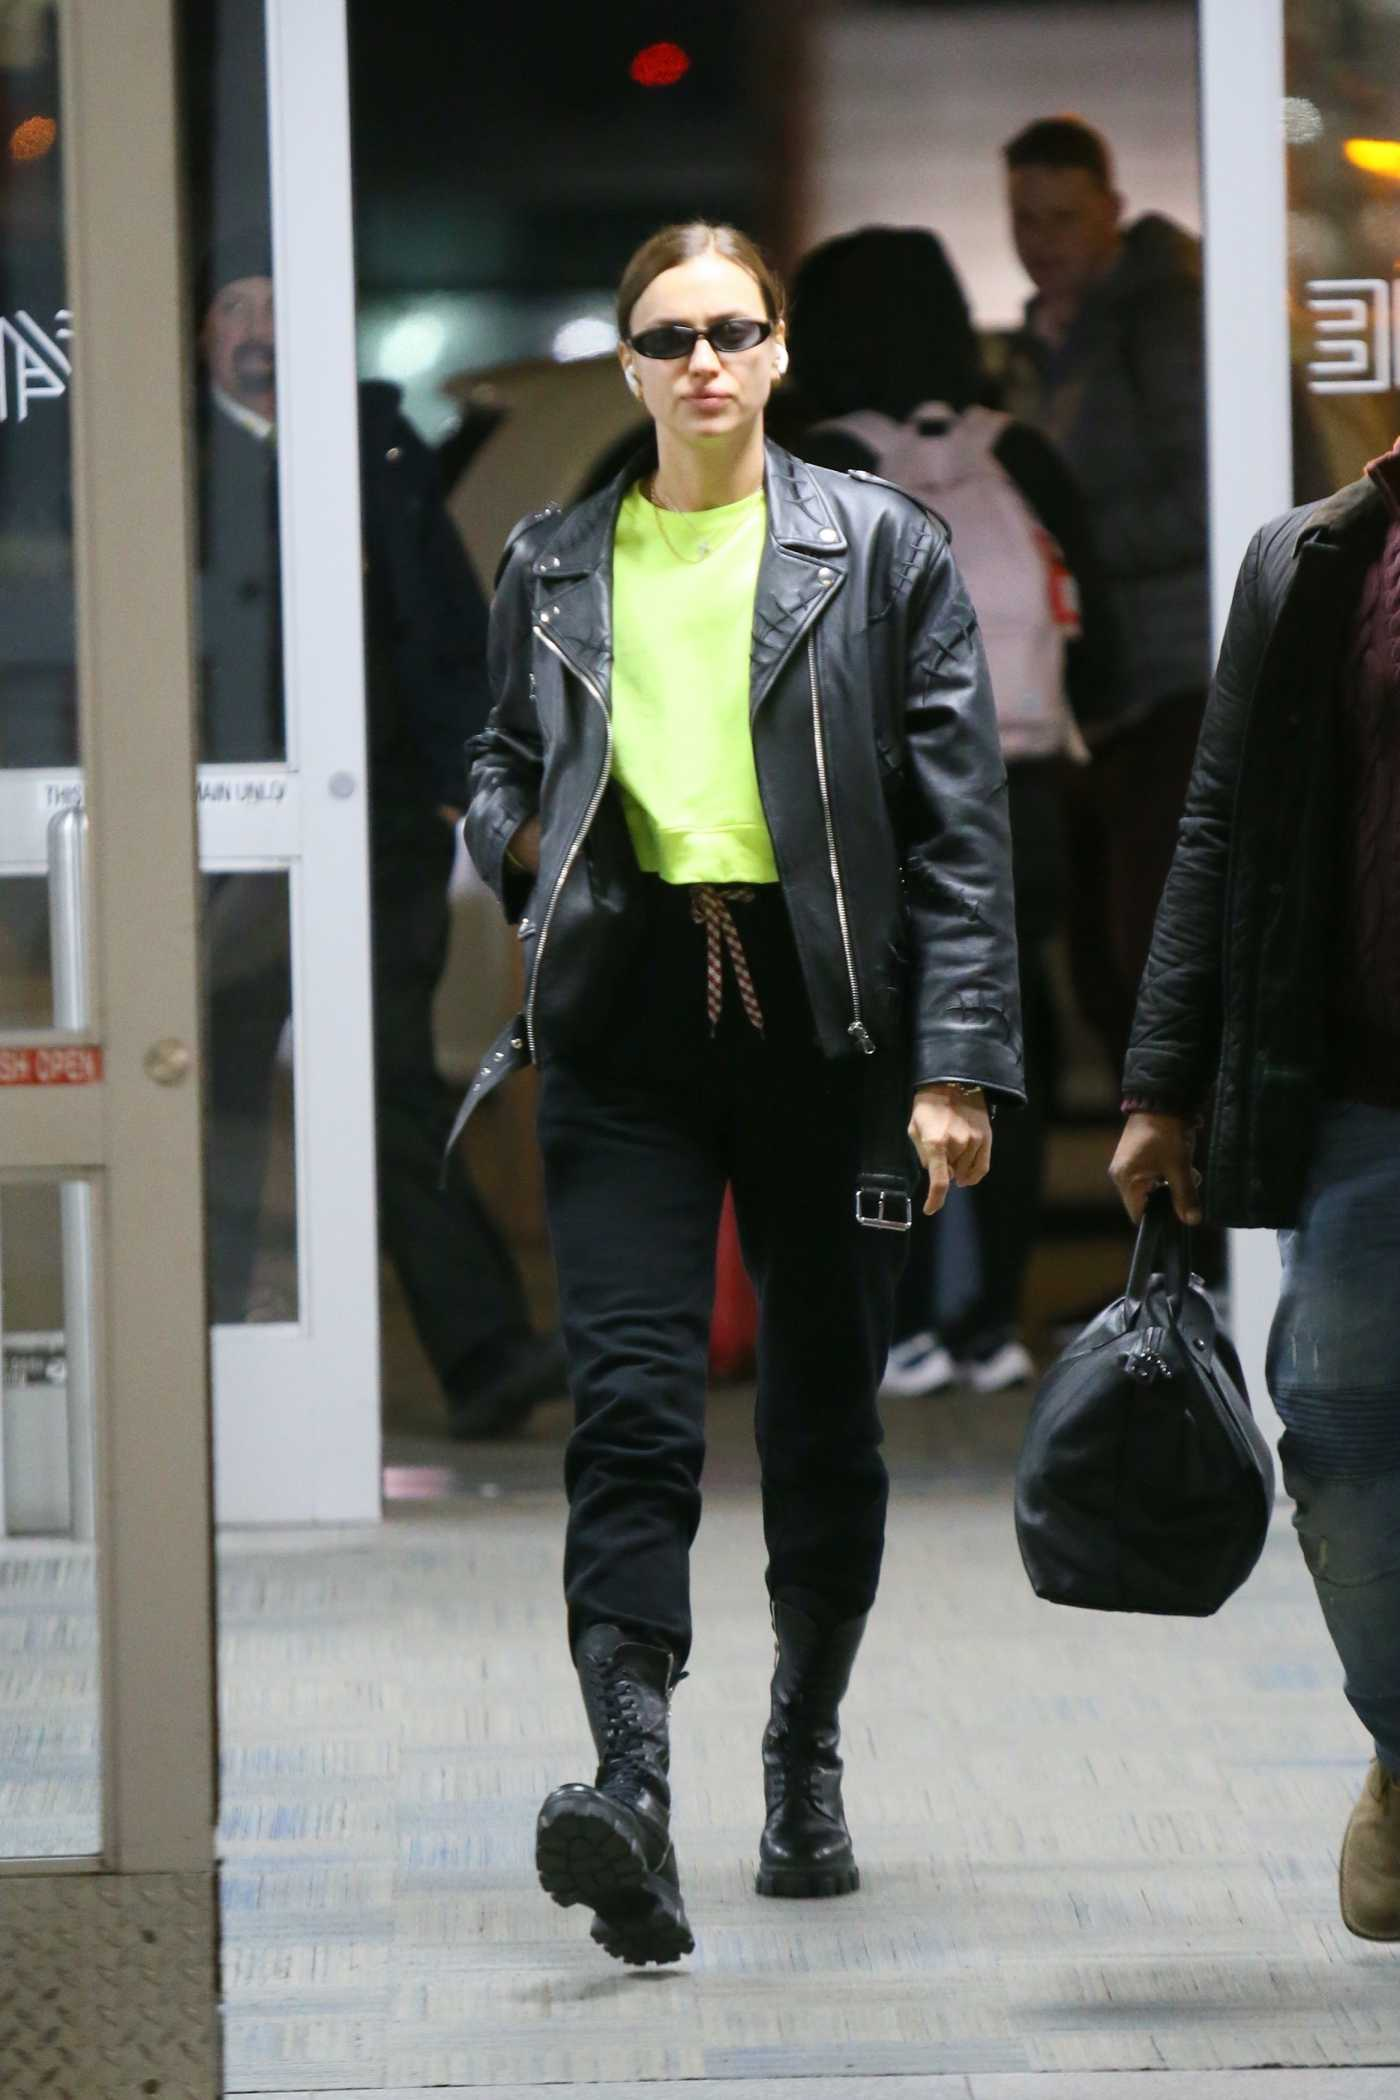 Irina Shayk in a Black Leather Jacket Arrives at JFK Airport in New York 02/15/2020